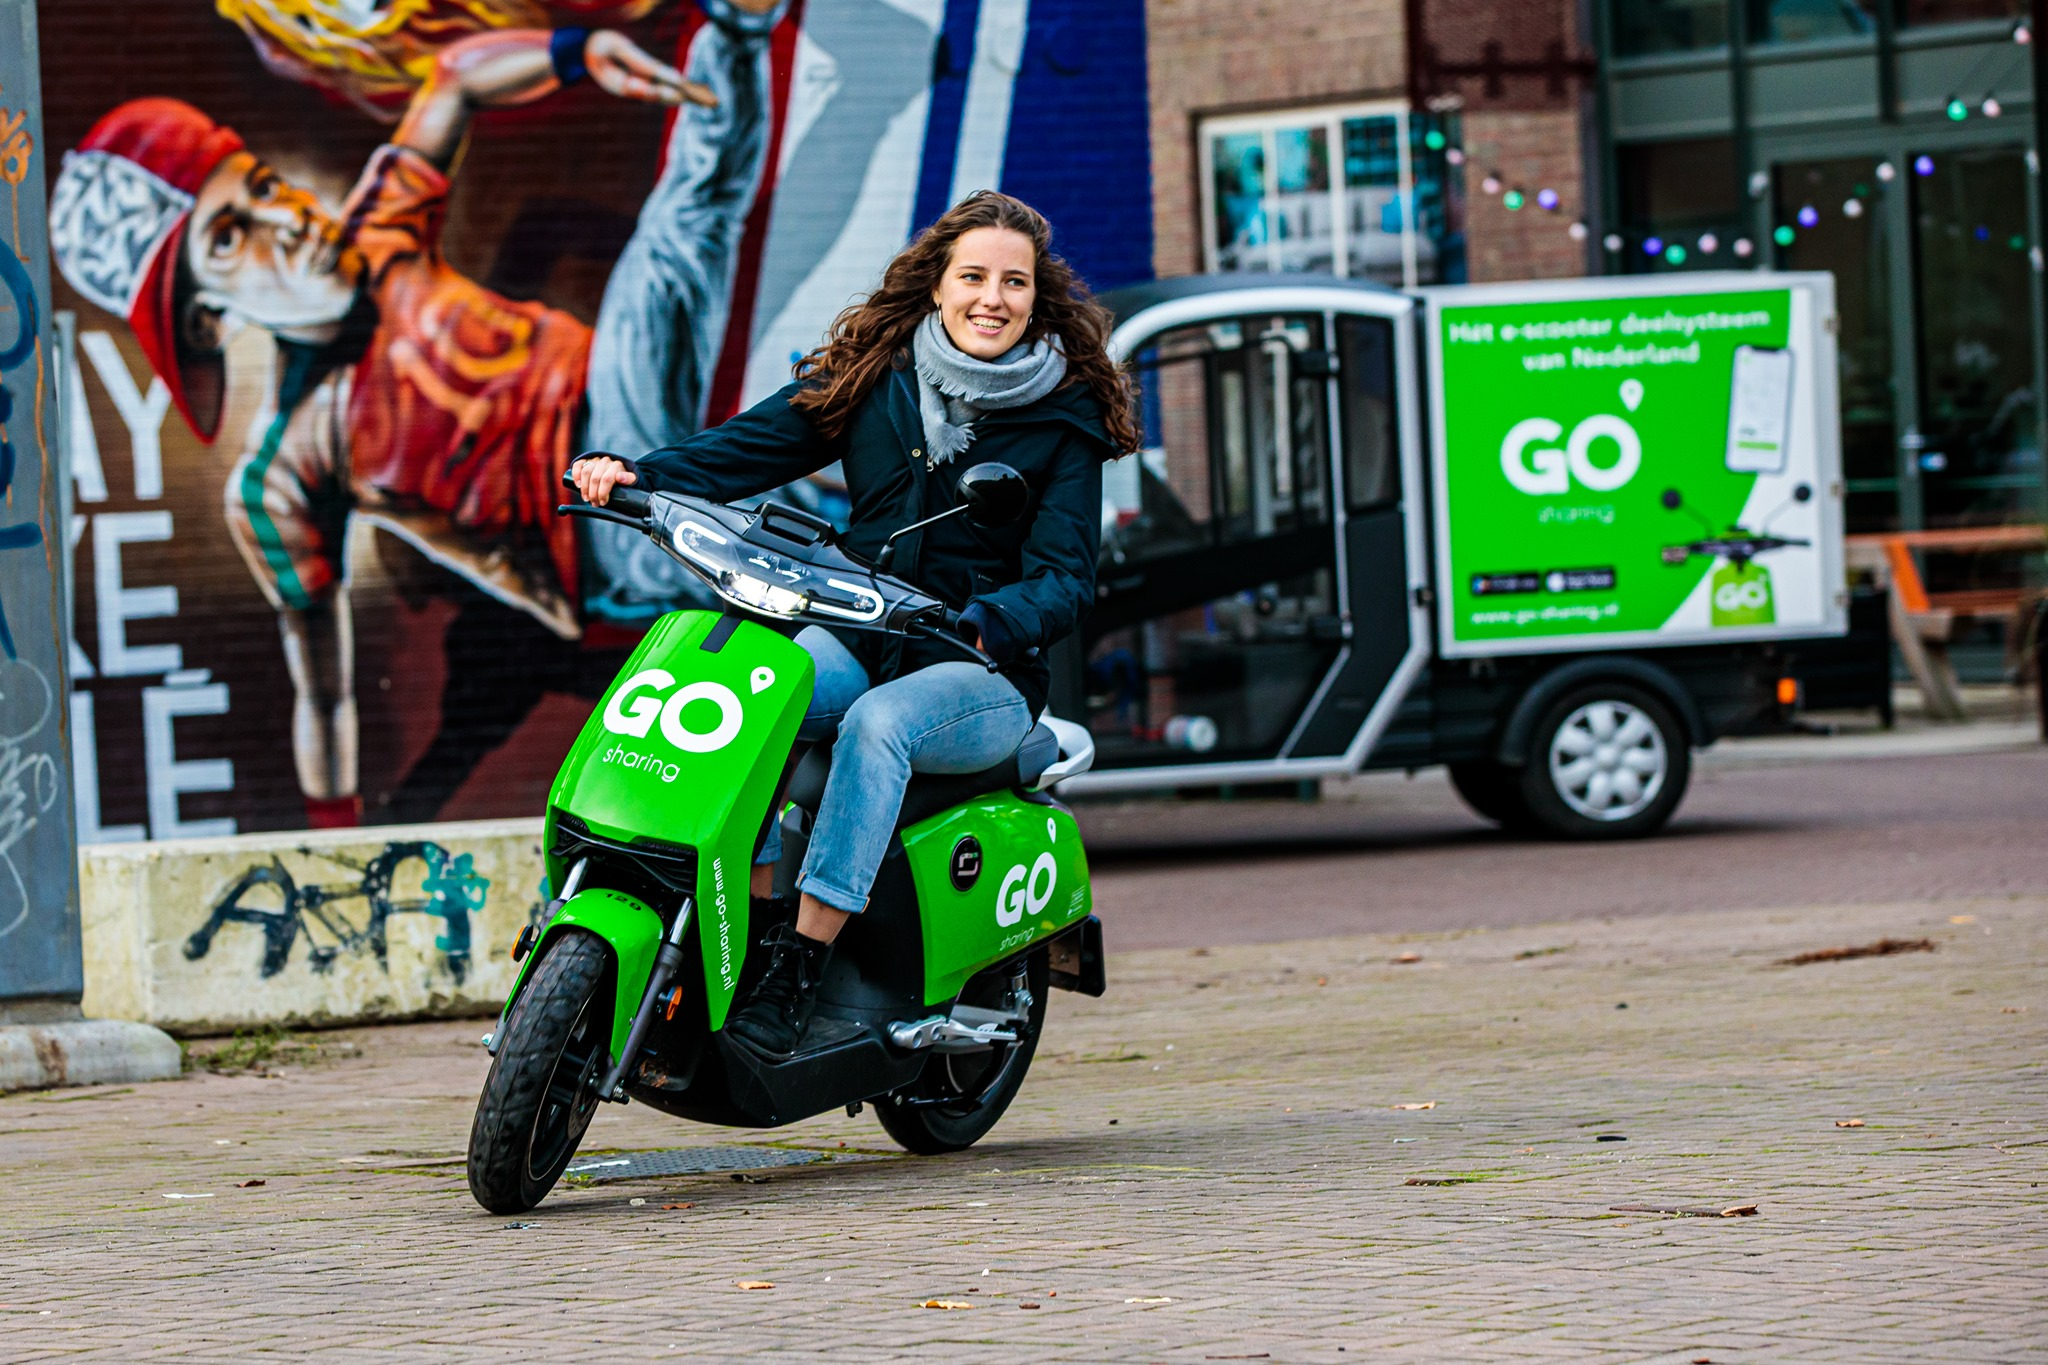 GO Sharing scooters populair in Tilburg